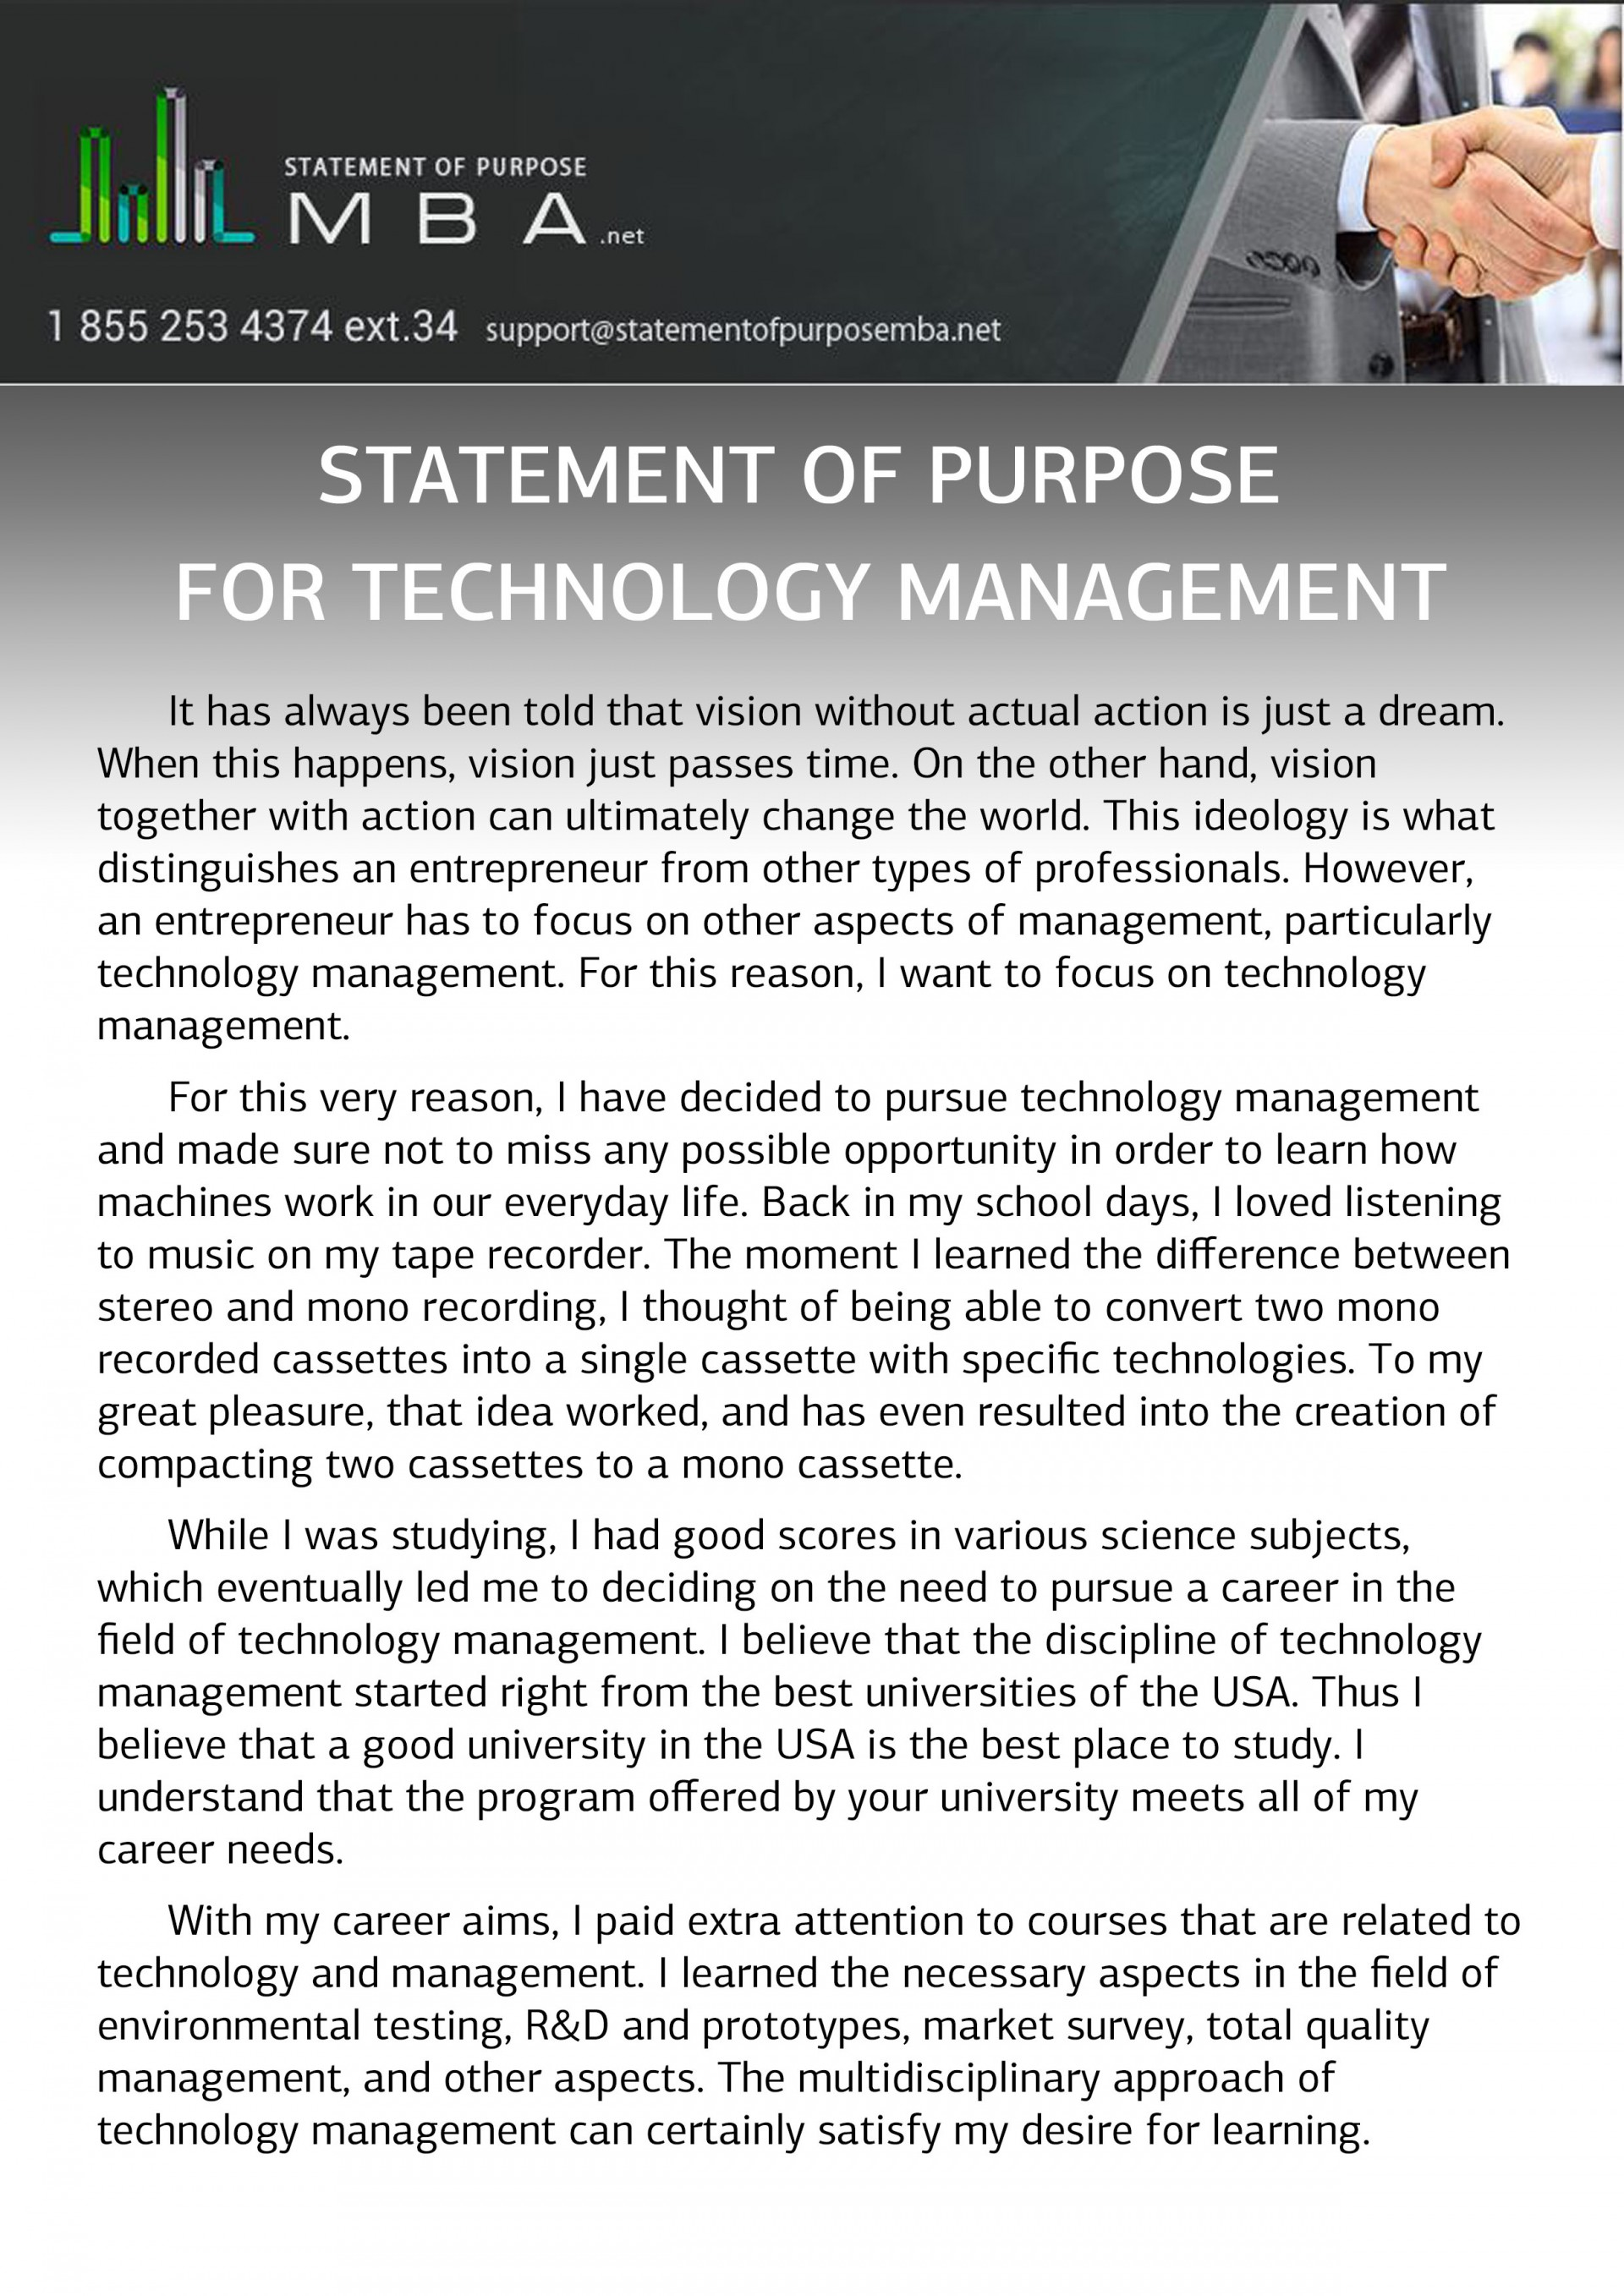 012 Columbia Mba Essay On Goals Career Vision Executive Embas Statement Of Purpose For Technology Management S Mit Astounding Questions Analysis Formatting 1920